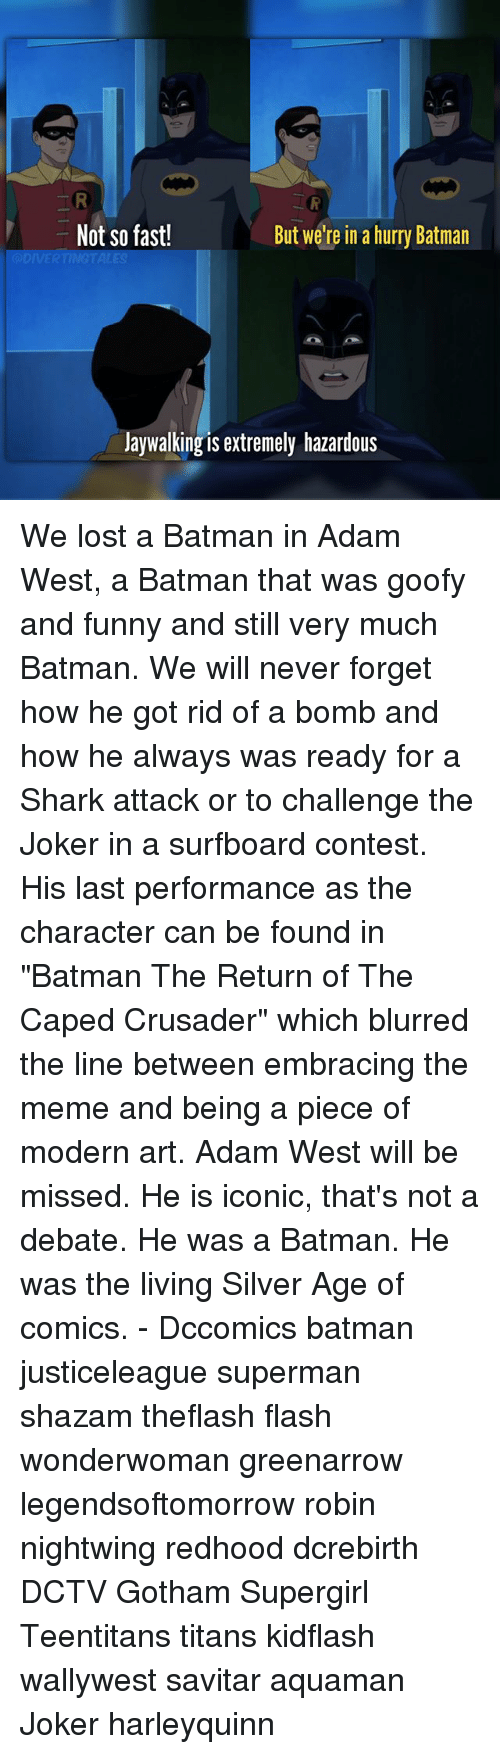 """Batmane: Not so fast!  But we're in a hurry Batman  Jaywalking is extremely hazardous We lost a Batman in Adam West, a Batman that was goofy and funny and still very much Batman. We will never forget how he got rid of a bomb and how he always was ready for a Shark attack or to challenge the Joker in a surfboard contest. His last performance as the character can be found in """"Batman The Return of The Caped Crusader"""" which blurred the line between embracing the meme and being a piece of modern art. Adam West will be missed. He is iconic, that's not a debate. He was a Batman. He was the living Silver Age of comics. - Dccomics batman justiceleague superman shazam theflash flash wonderwoman greenarrow legendsoftomorrow robin nightwing redhood dcrebirth DCTV Gotham Supergirl Teentitans titans kidflash wallywest savitar aquaman Joker harleyquinn"""